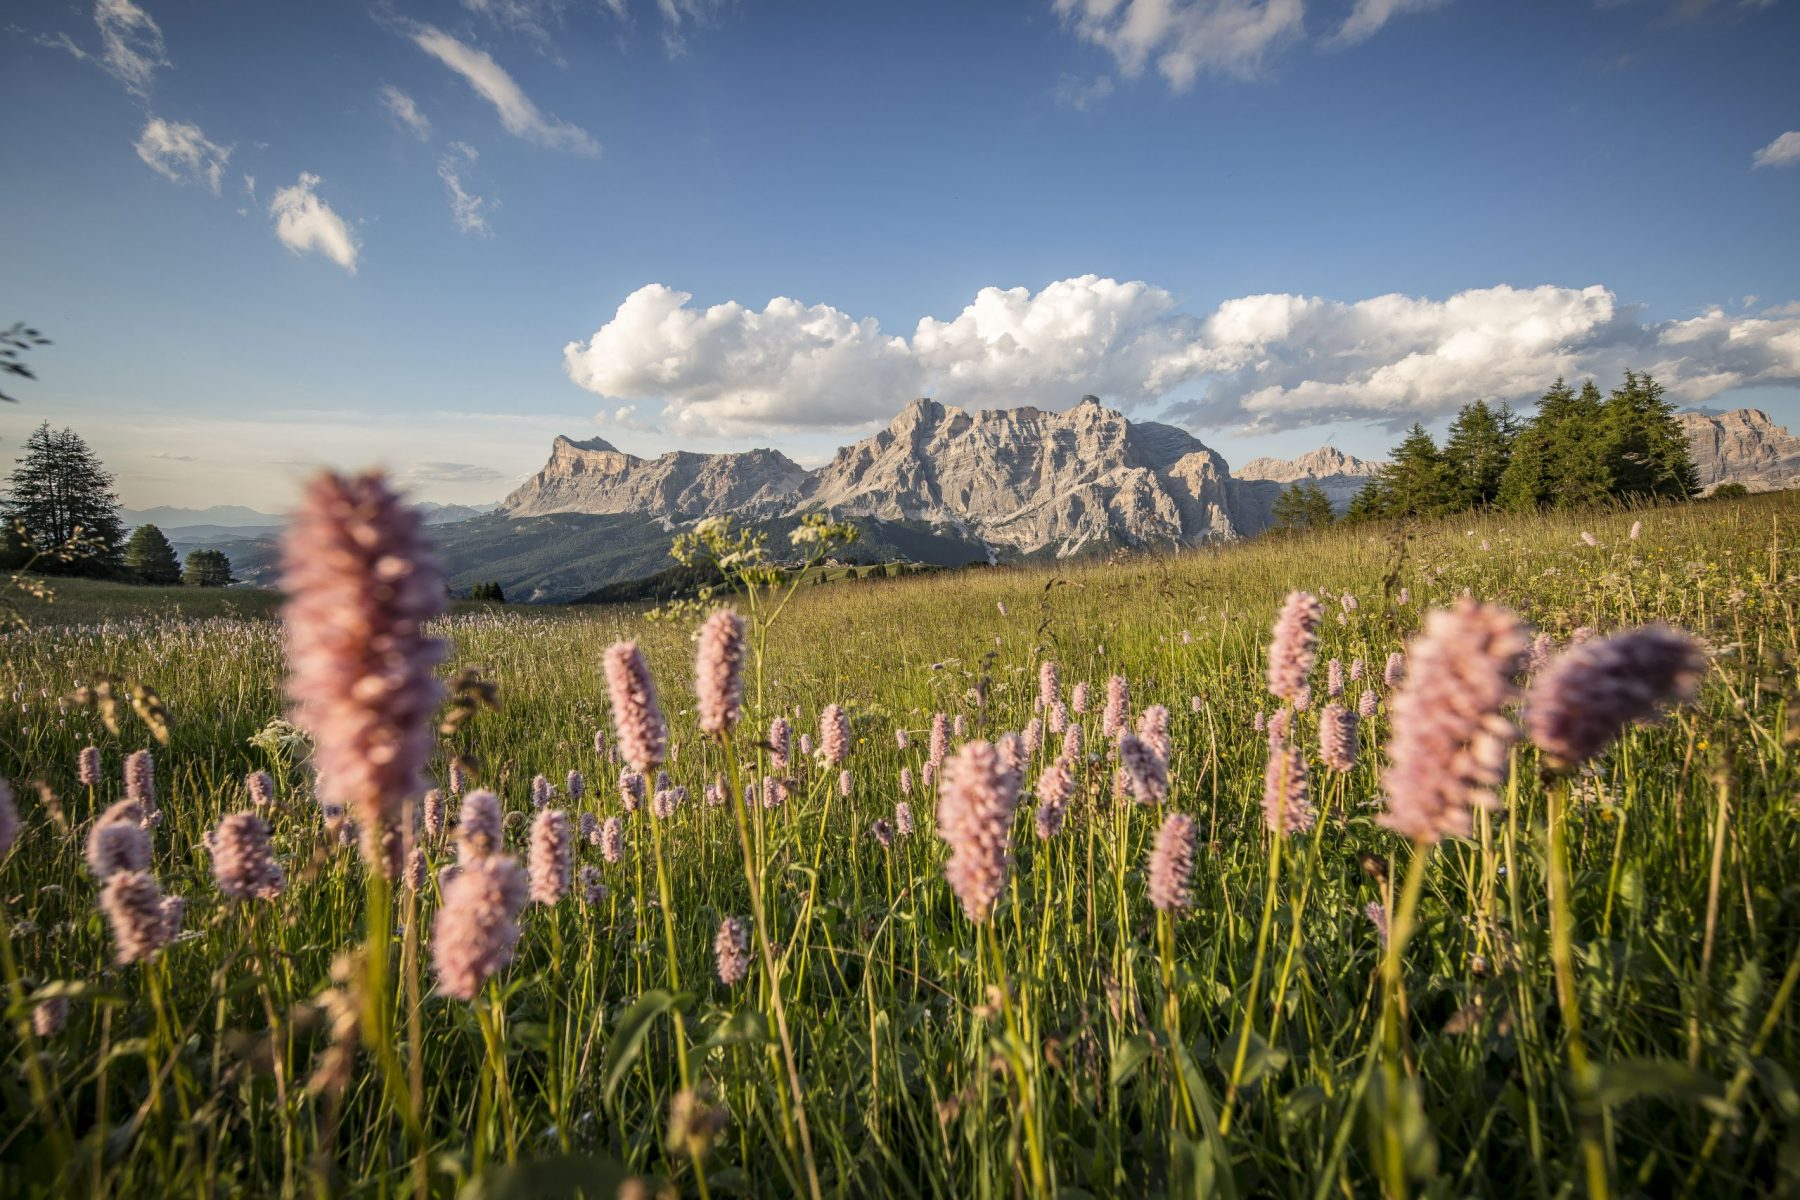 Alta Badia. Sas dla Crusc Lavarela. Photo: Ffreddy Planinschek. Alta Badia Tourism Office. Planning your summer in the mountains of Alta Badia.